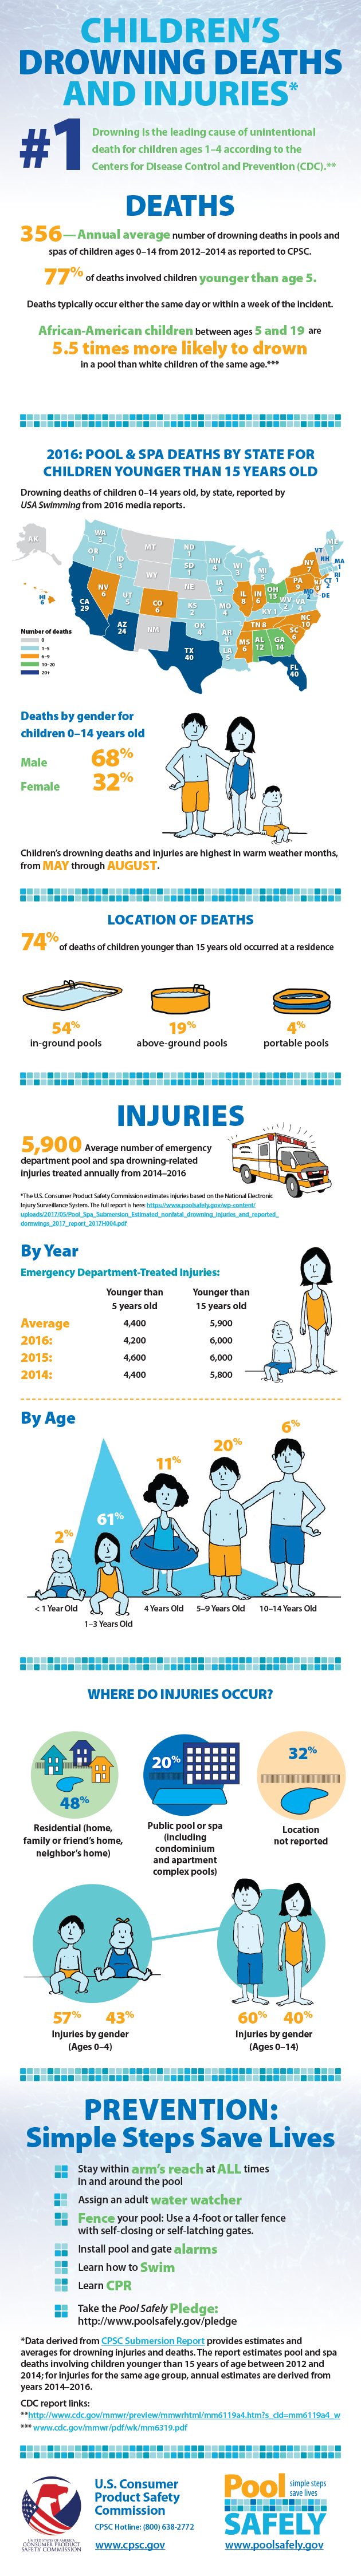 Childrens drowning deaths and injuries infographic